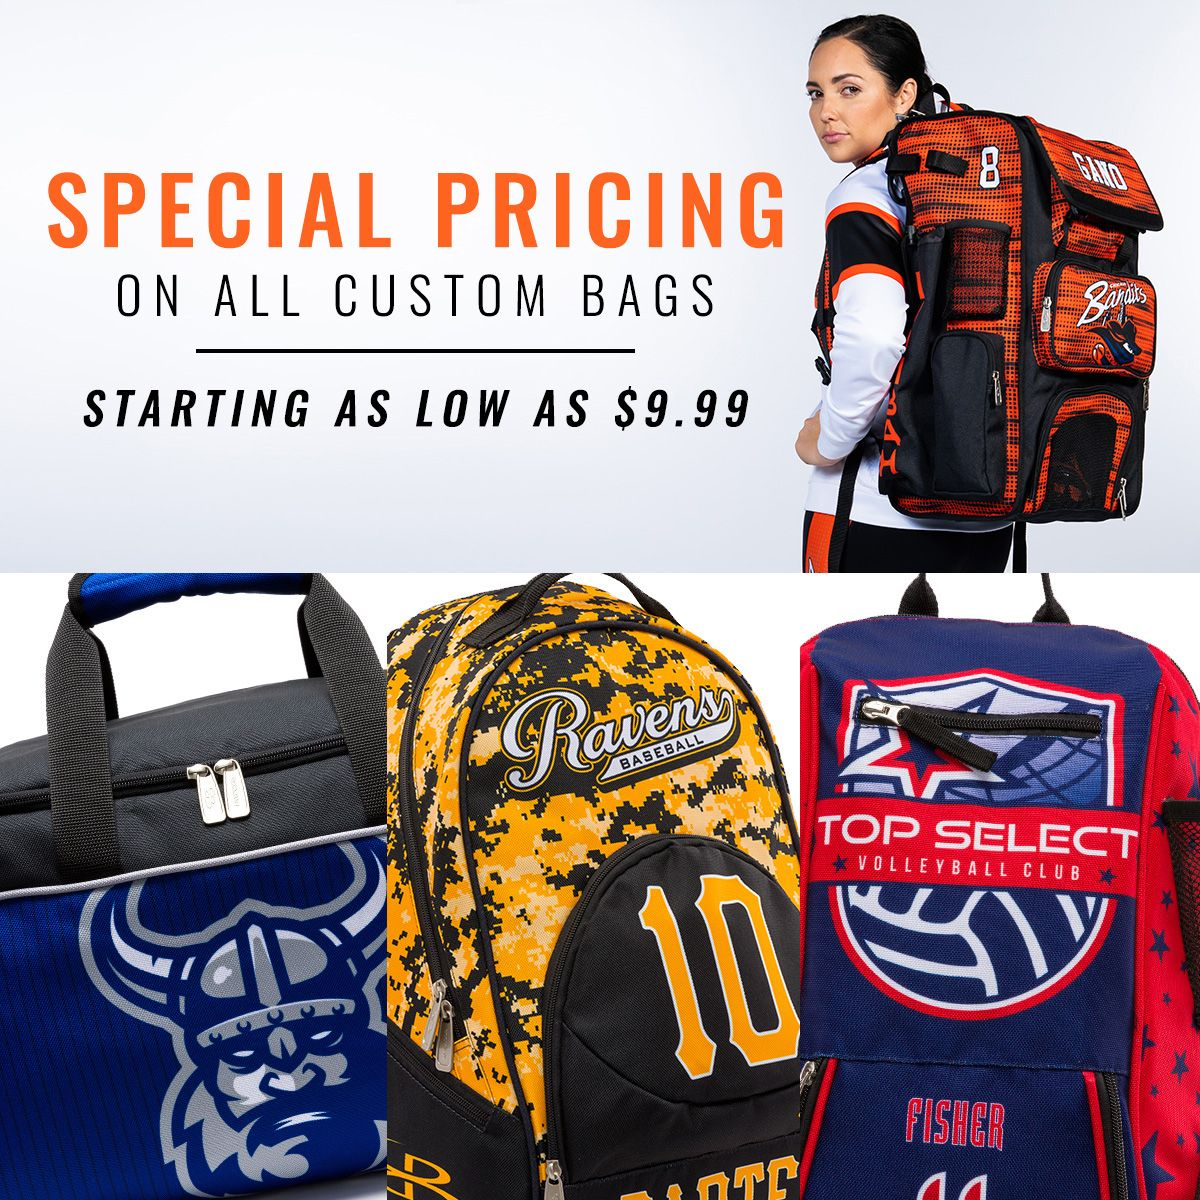 Pin By Boombah On Football Gear Custom Bags Volleyball Gear Football Gear